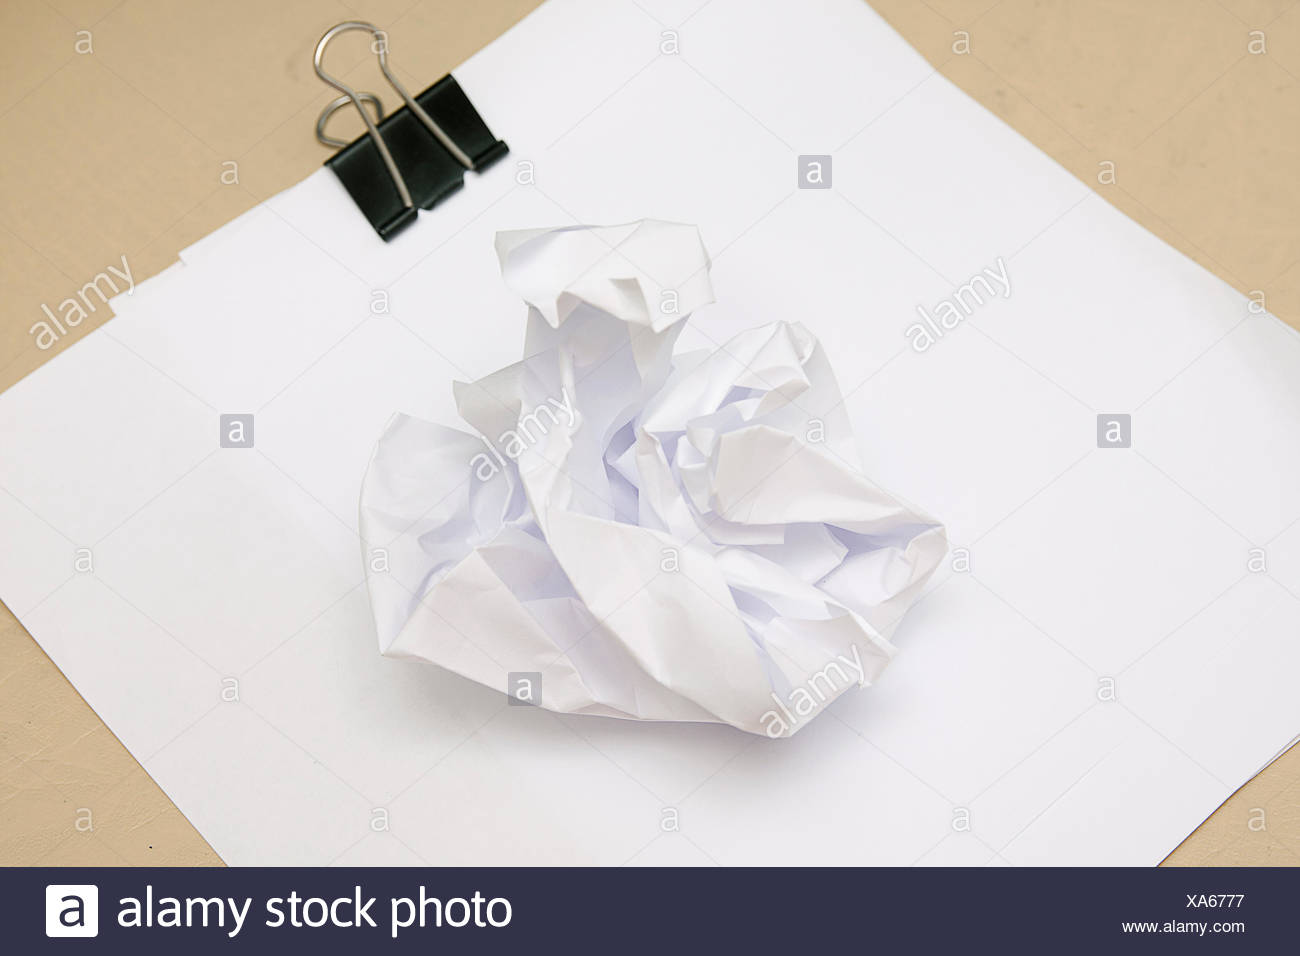 piece of screwed up white paper - Stock Image